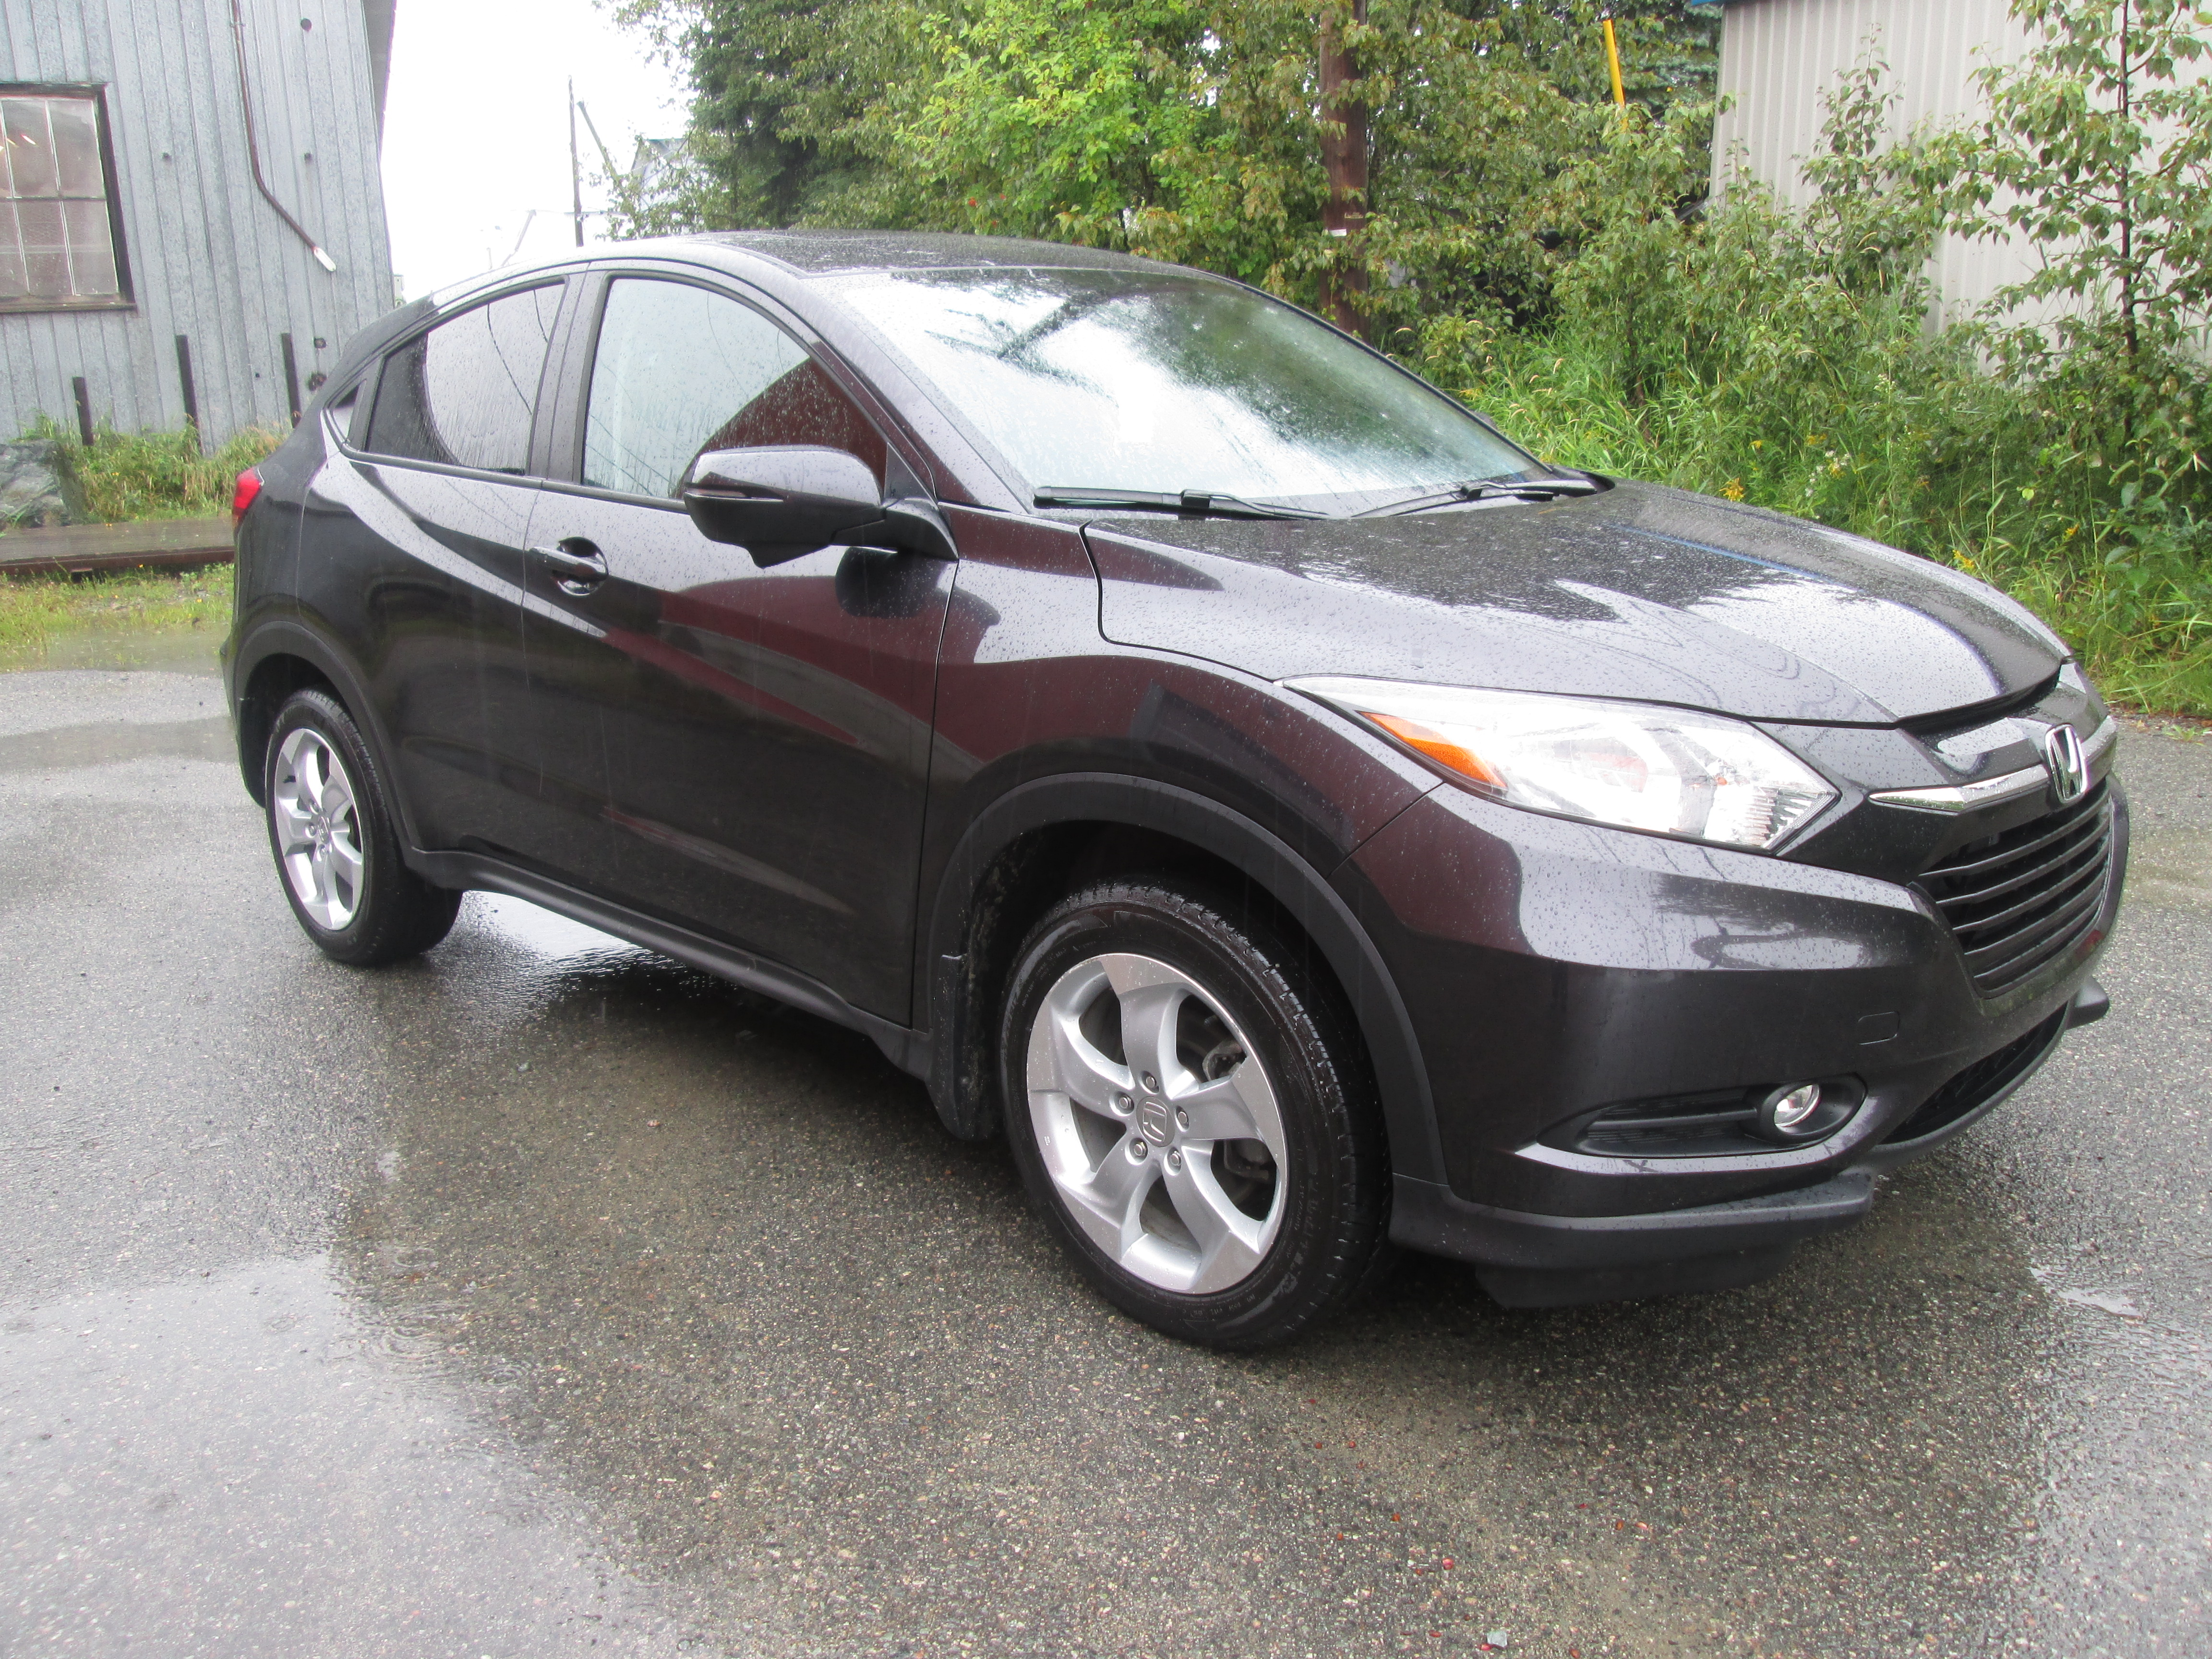 Used Cars Trucks & SUVs for Sale in Amos